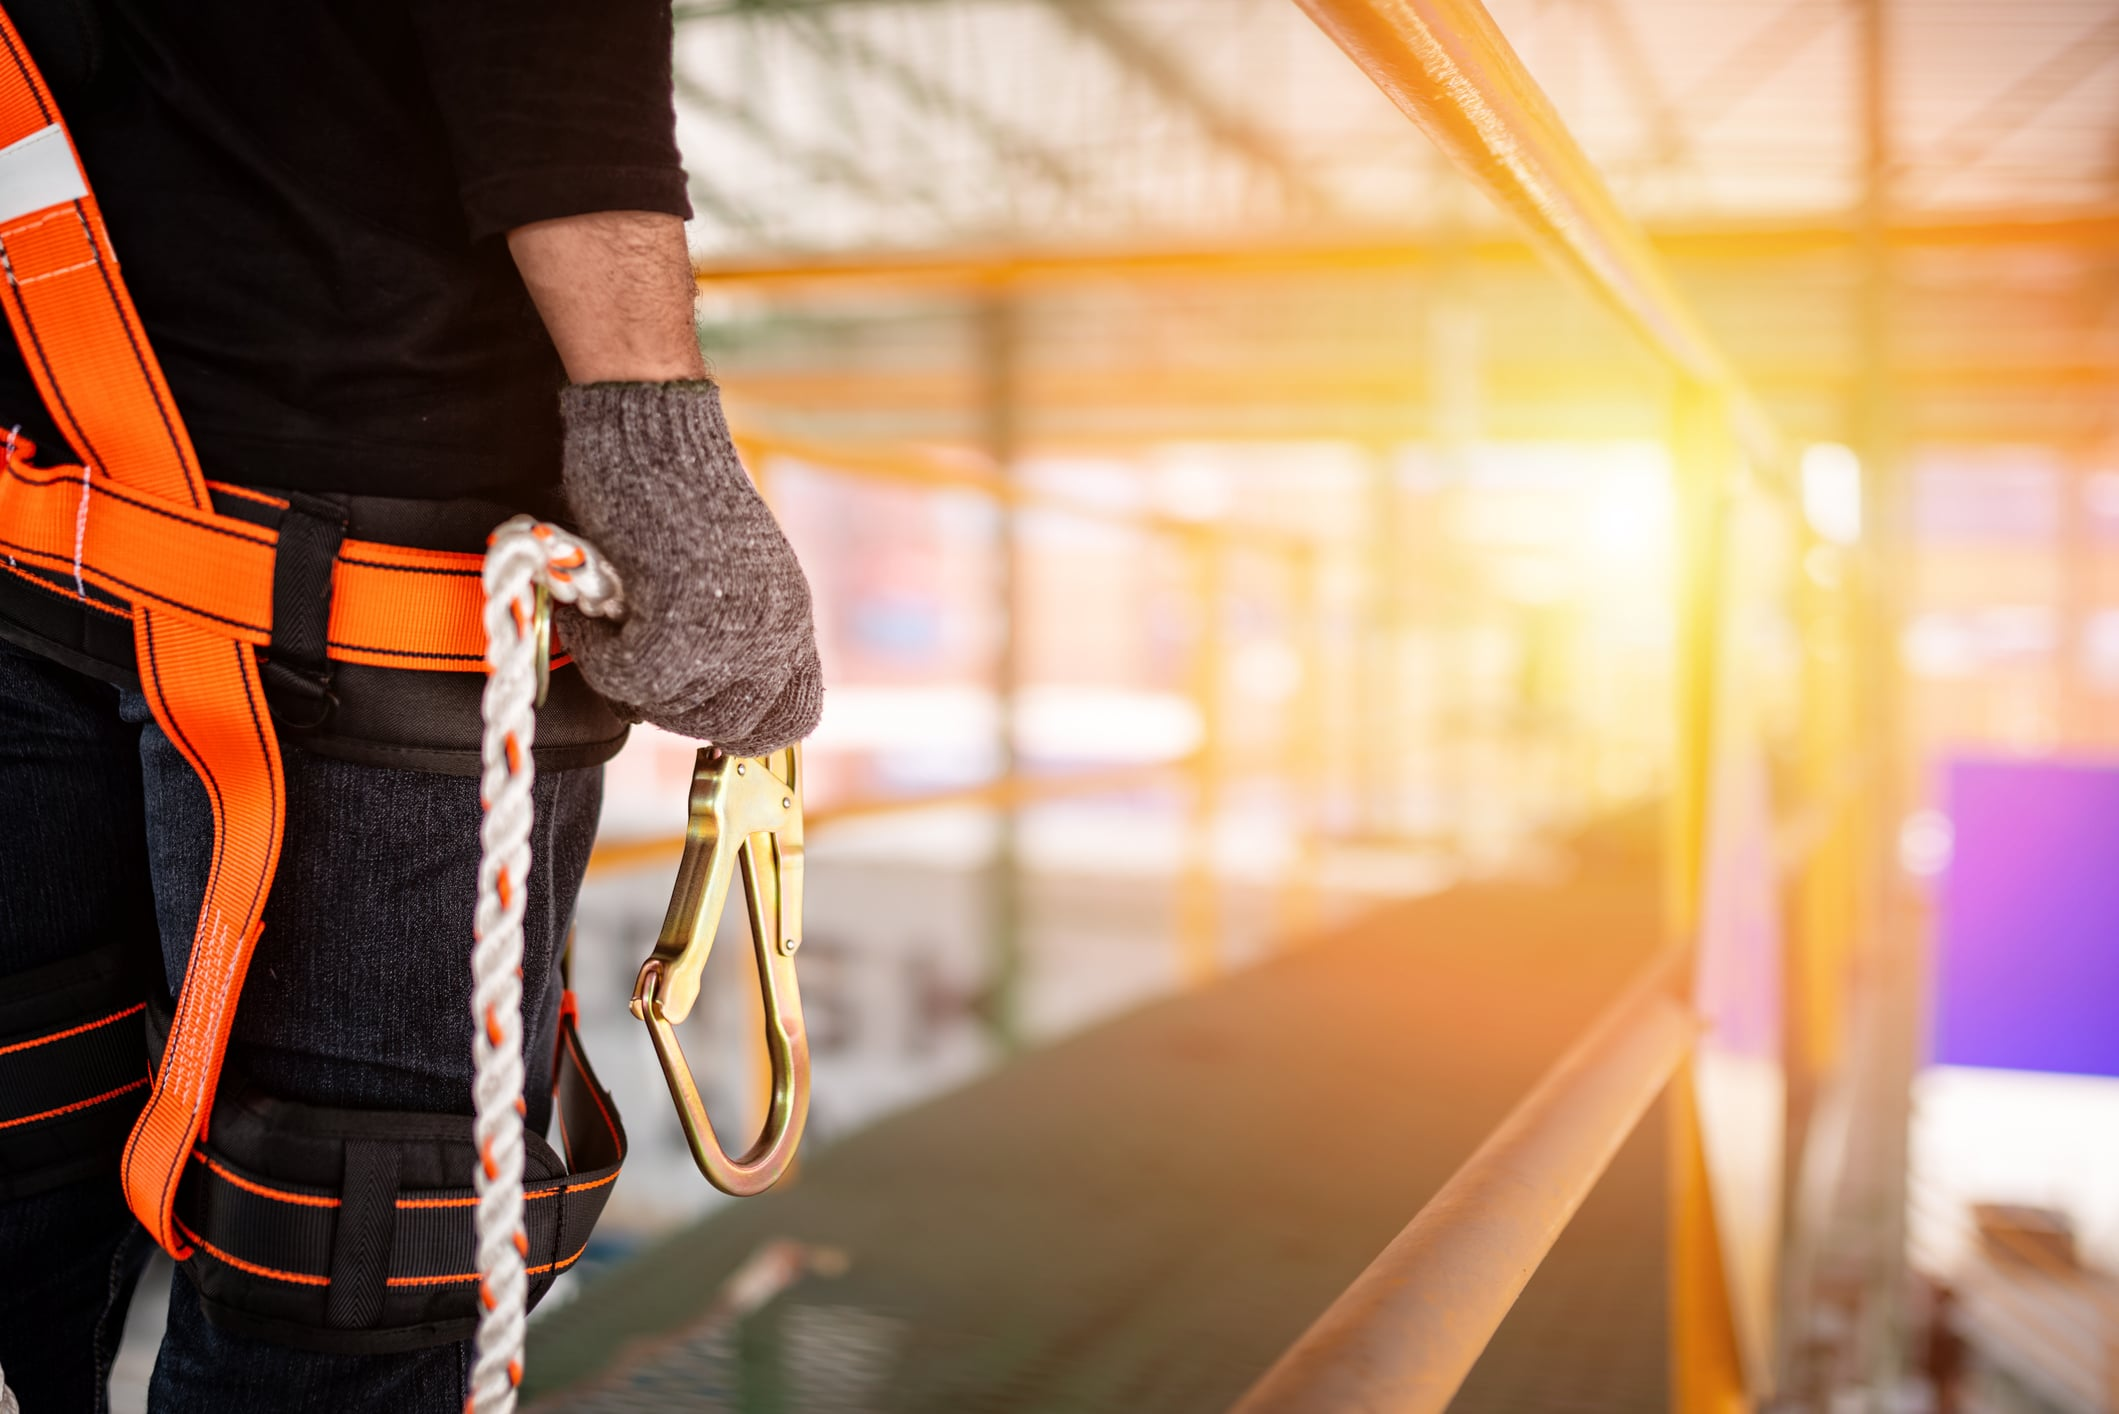 Report Any of These Fall Hazards at Your Workplace to OSHA